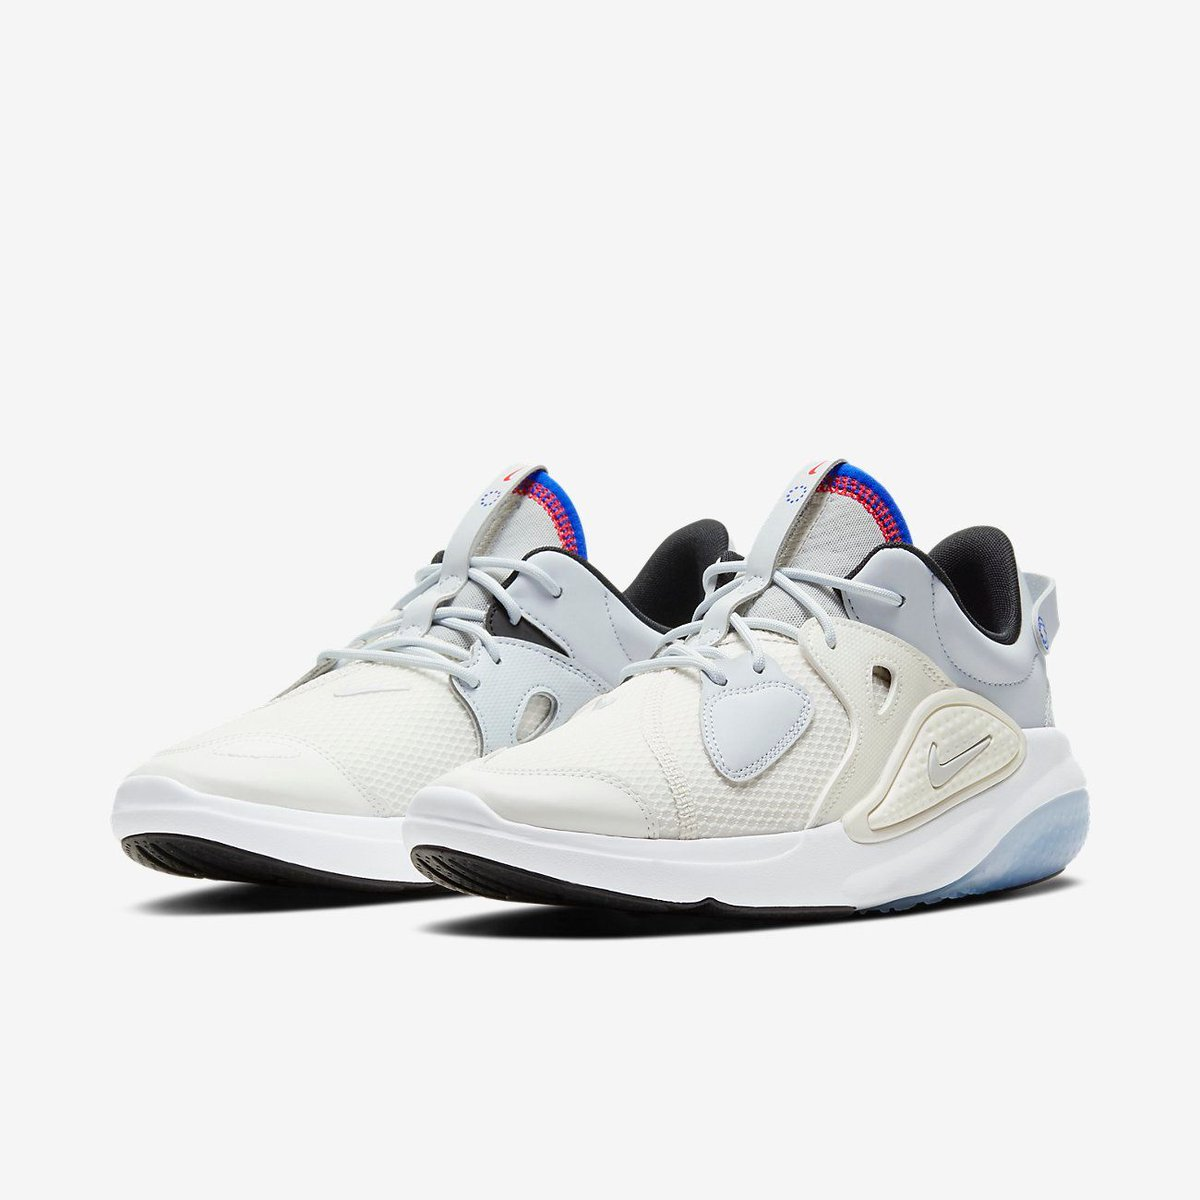 Kicksfinder Di Twitter Ad Nike Joyride Cc Sail White Racer Blue Is Now Available At Nikestore Https T Co Crygdu49yy